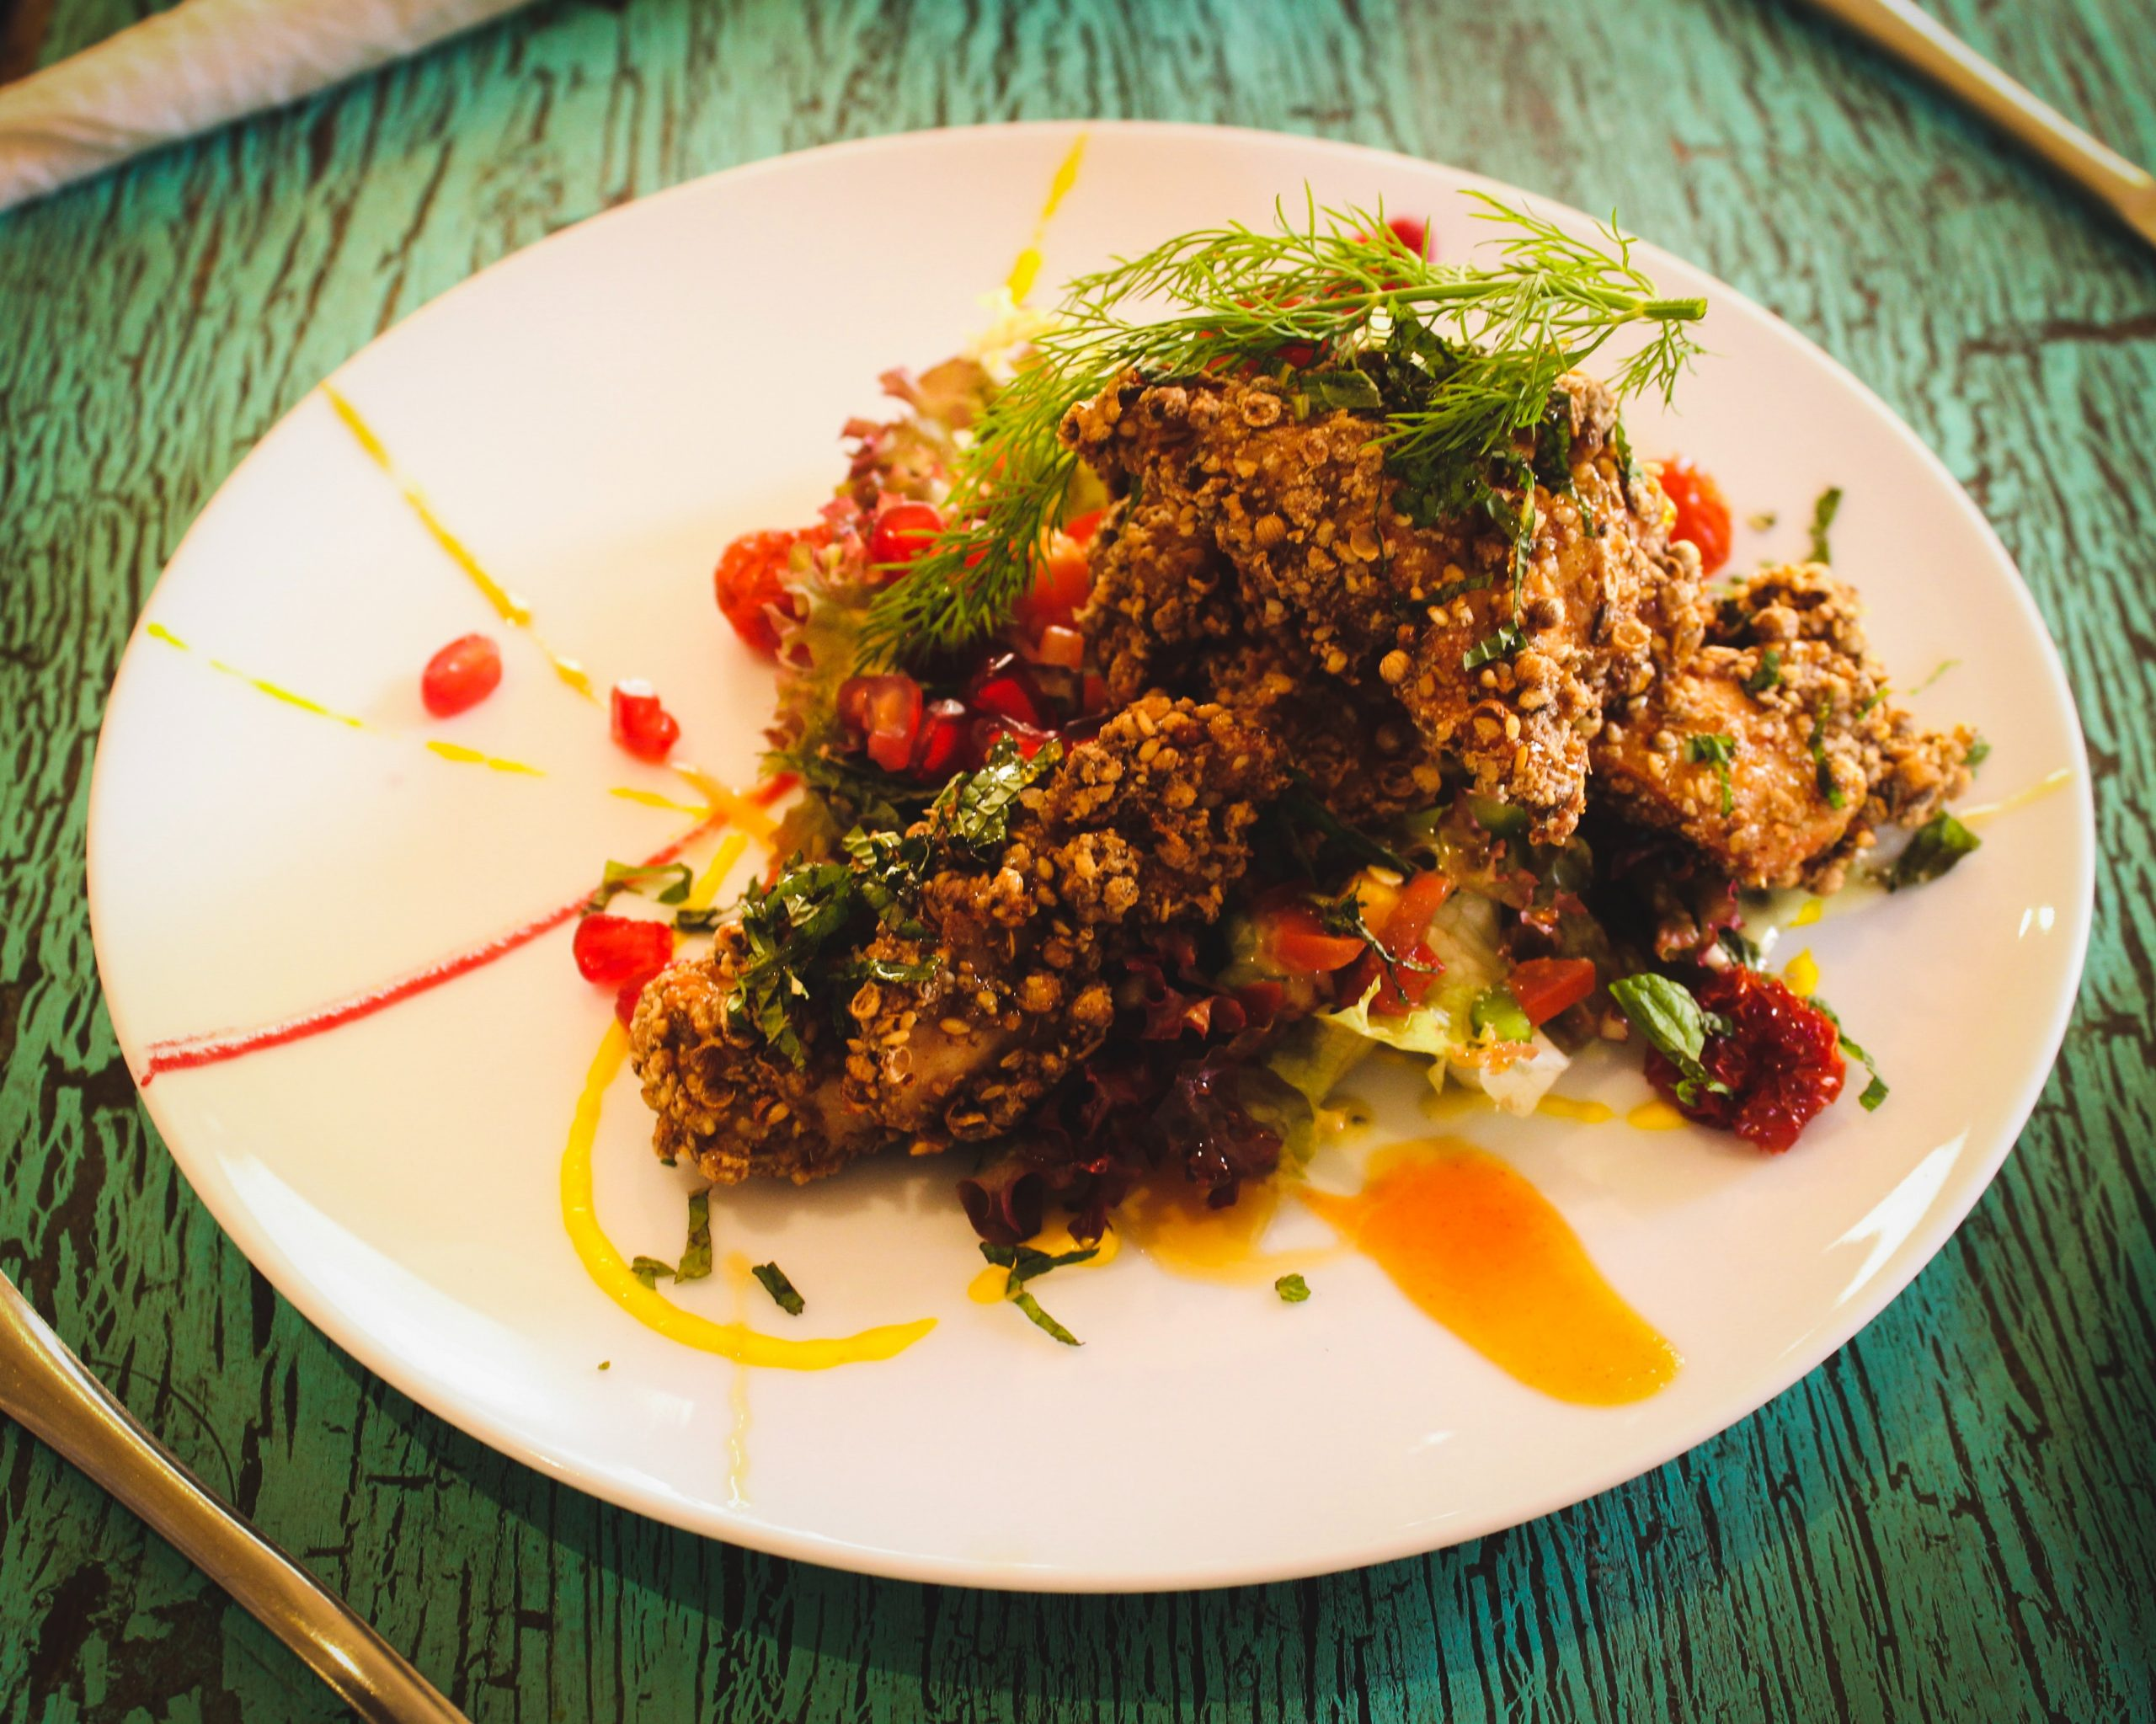 Chicken Thighs With Oats and Grain Mustard